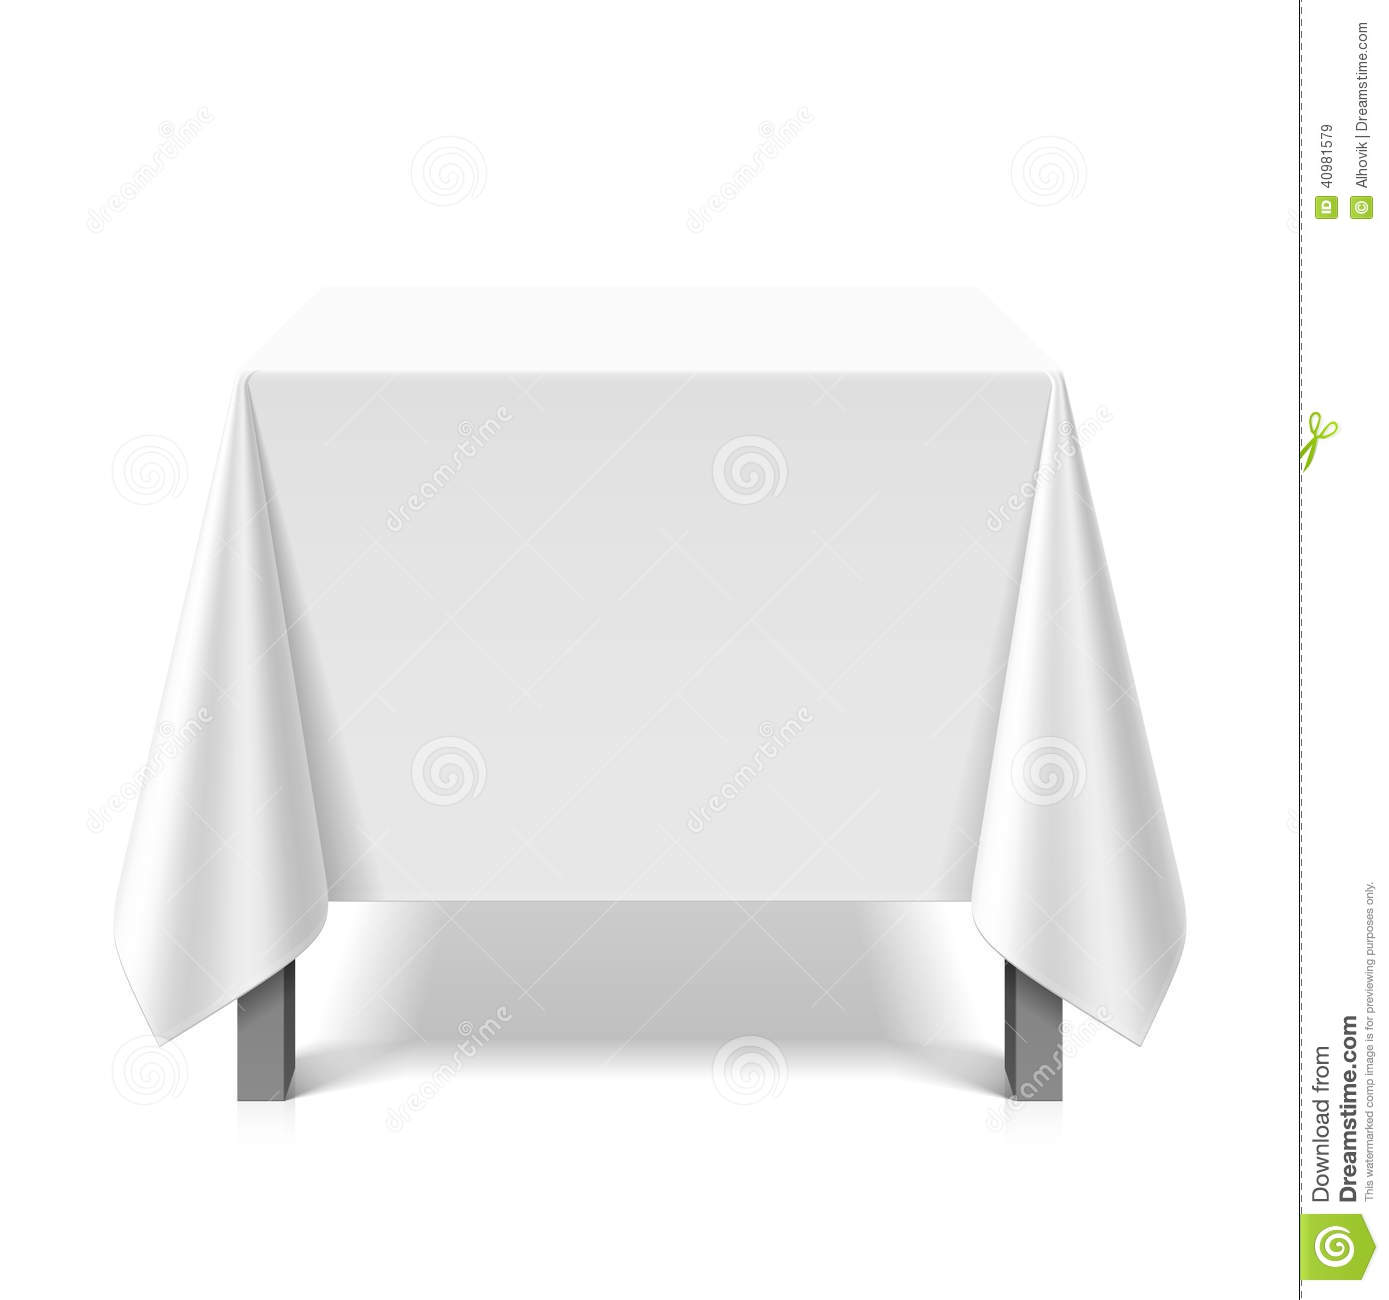 Square Table Covered With White Tablecloth Stock Vector ...